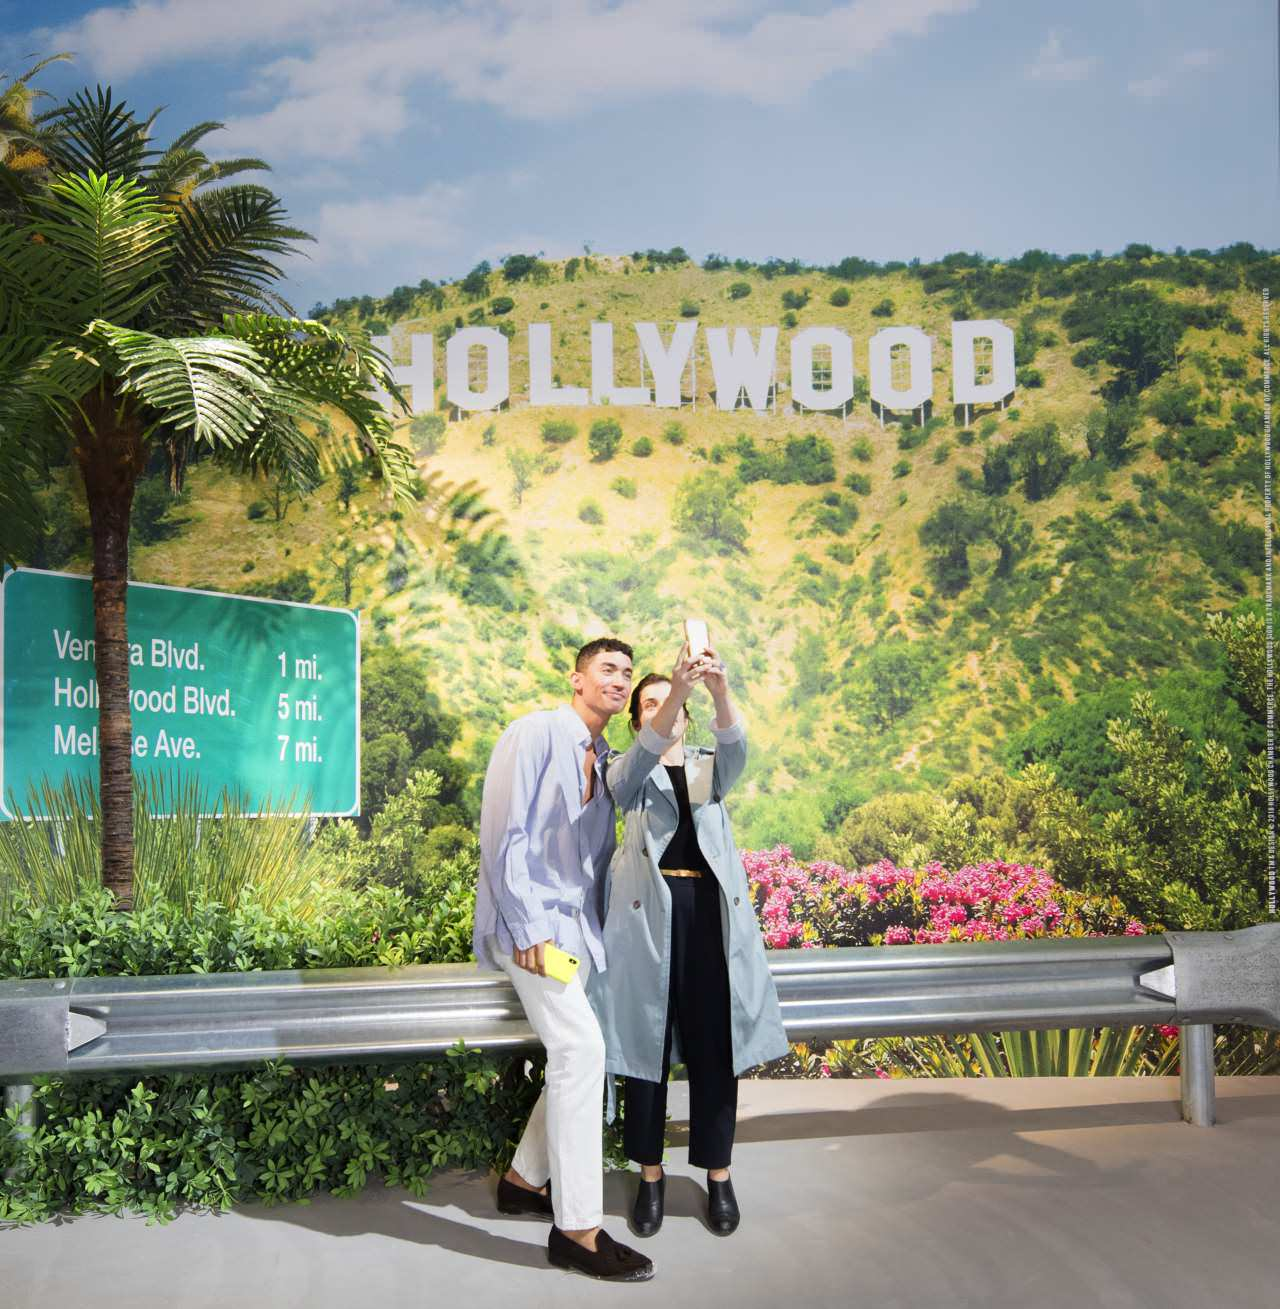 The Artist is Present, Shanghai 2018. Exhibition View. HOLLYWOOD TM & Design © 2018. Hollywood Chamber of Commerce. The Hollywood Sign is a trademark and intellectual property of Hollywood Chamber of Commerce. All Rights Reserved.